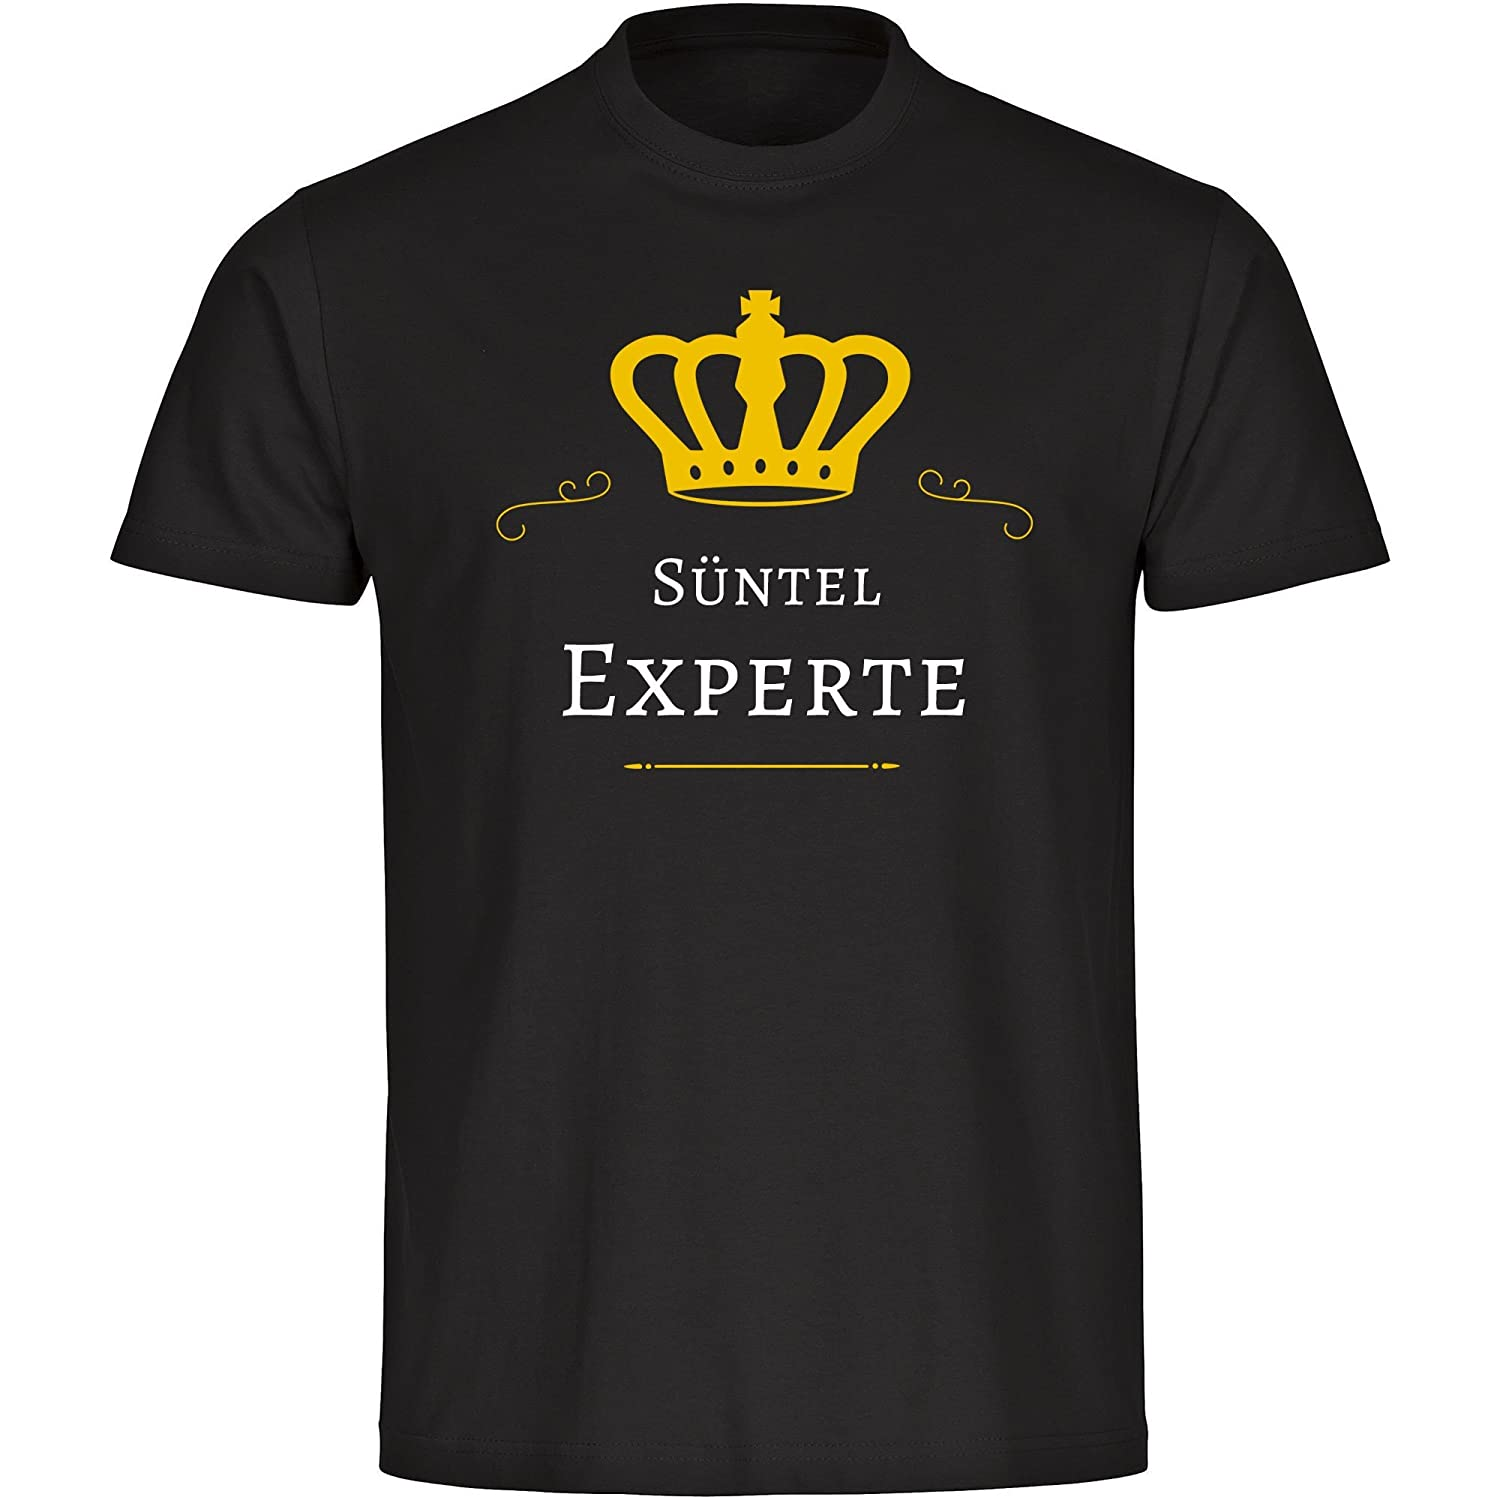 S眉ntel Expert Men's Black T-Shirt Size S to 5XL